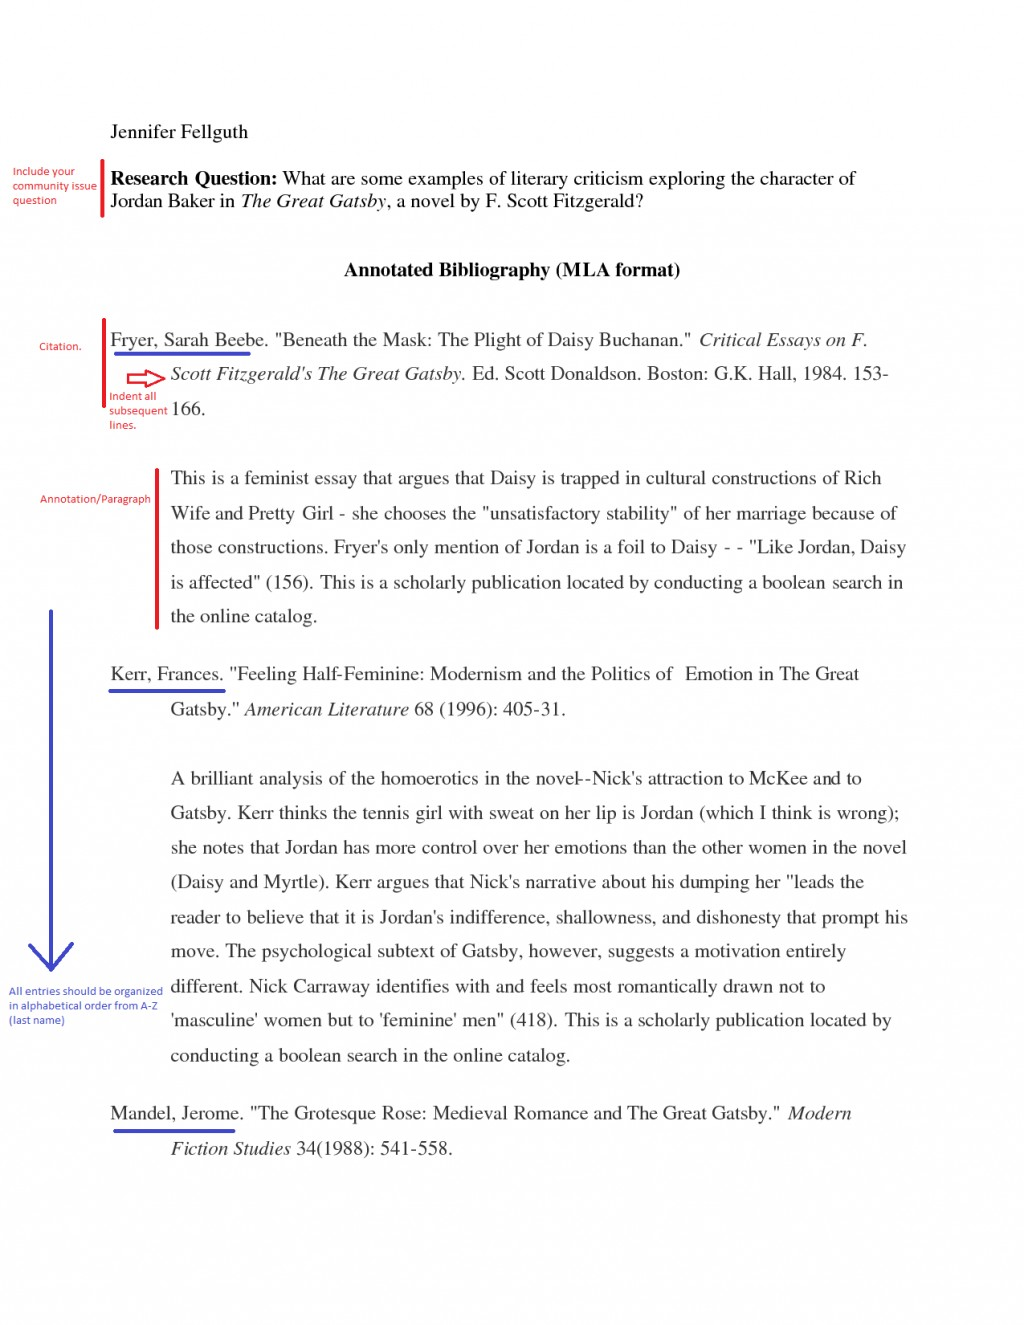 020 Mla Citation For Essay How To Cite Images In Format Did You Know Example Papernotatedbibsampleanno Parenthetical Citing Archaicawful An A Book 8th Edition Large